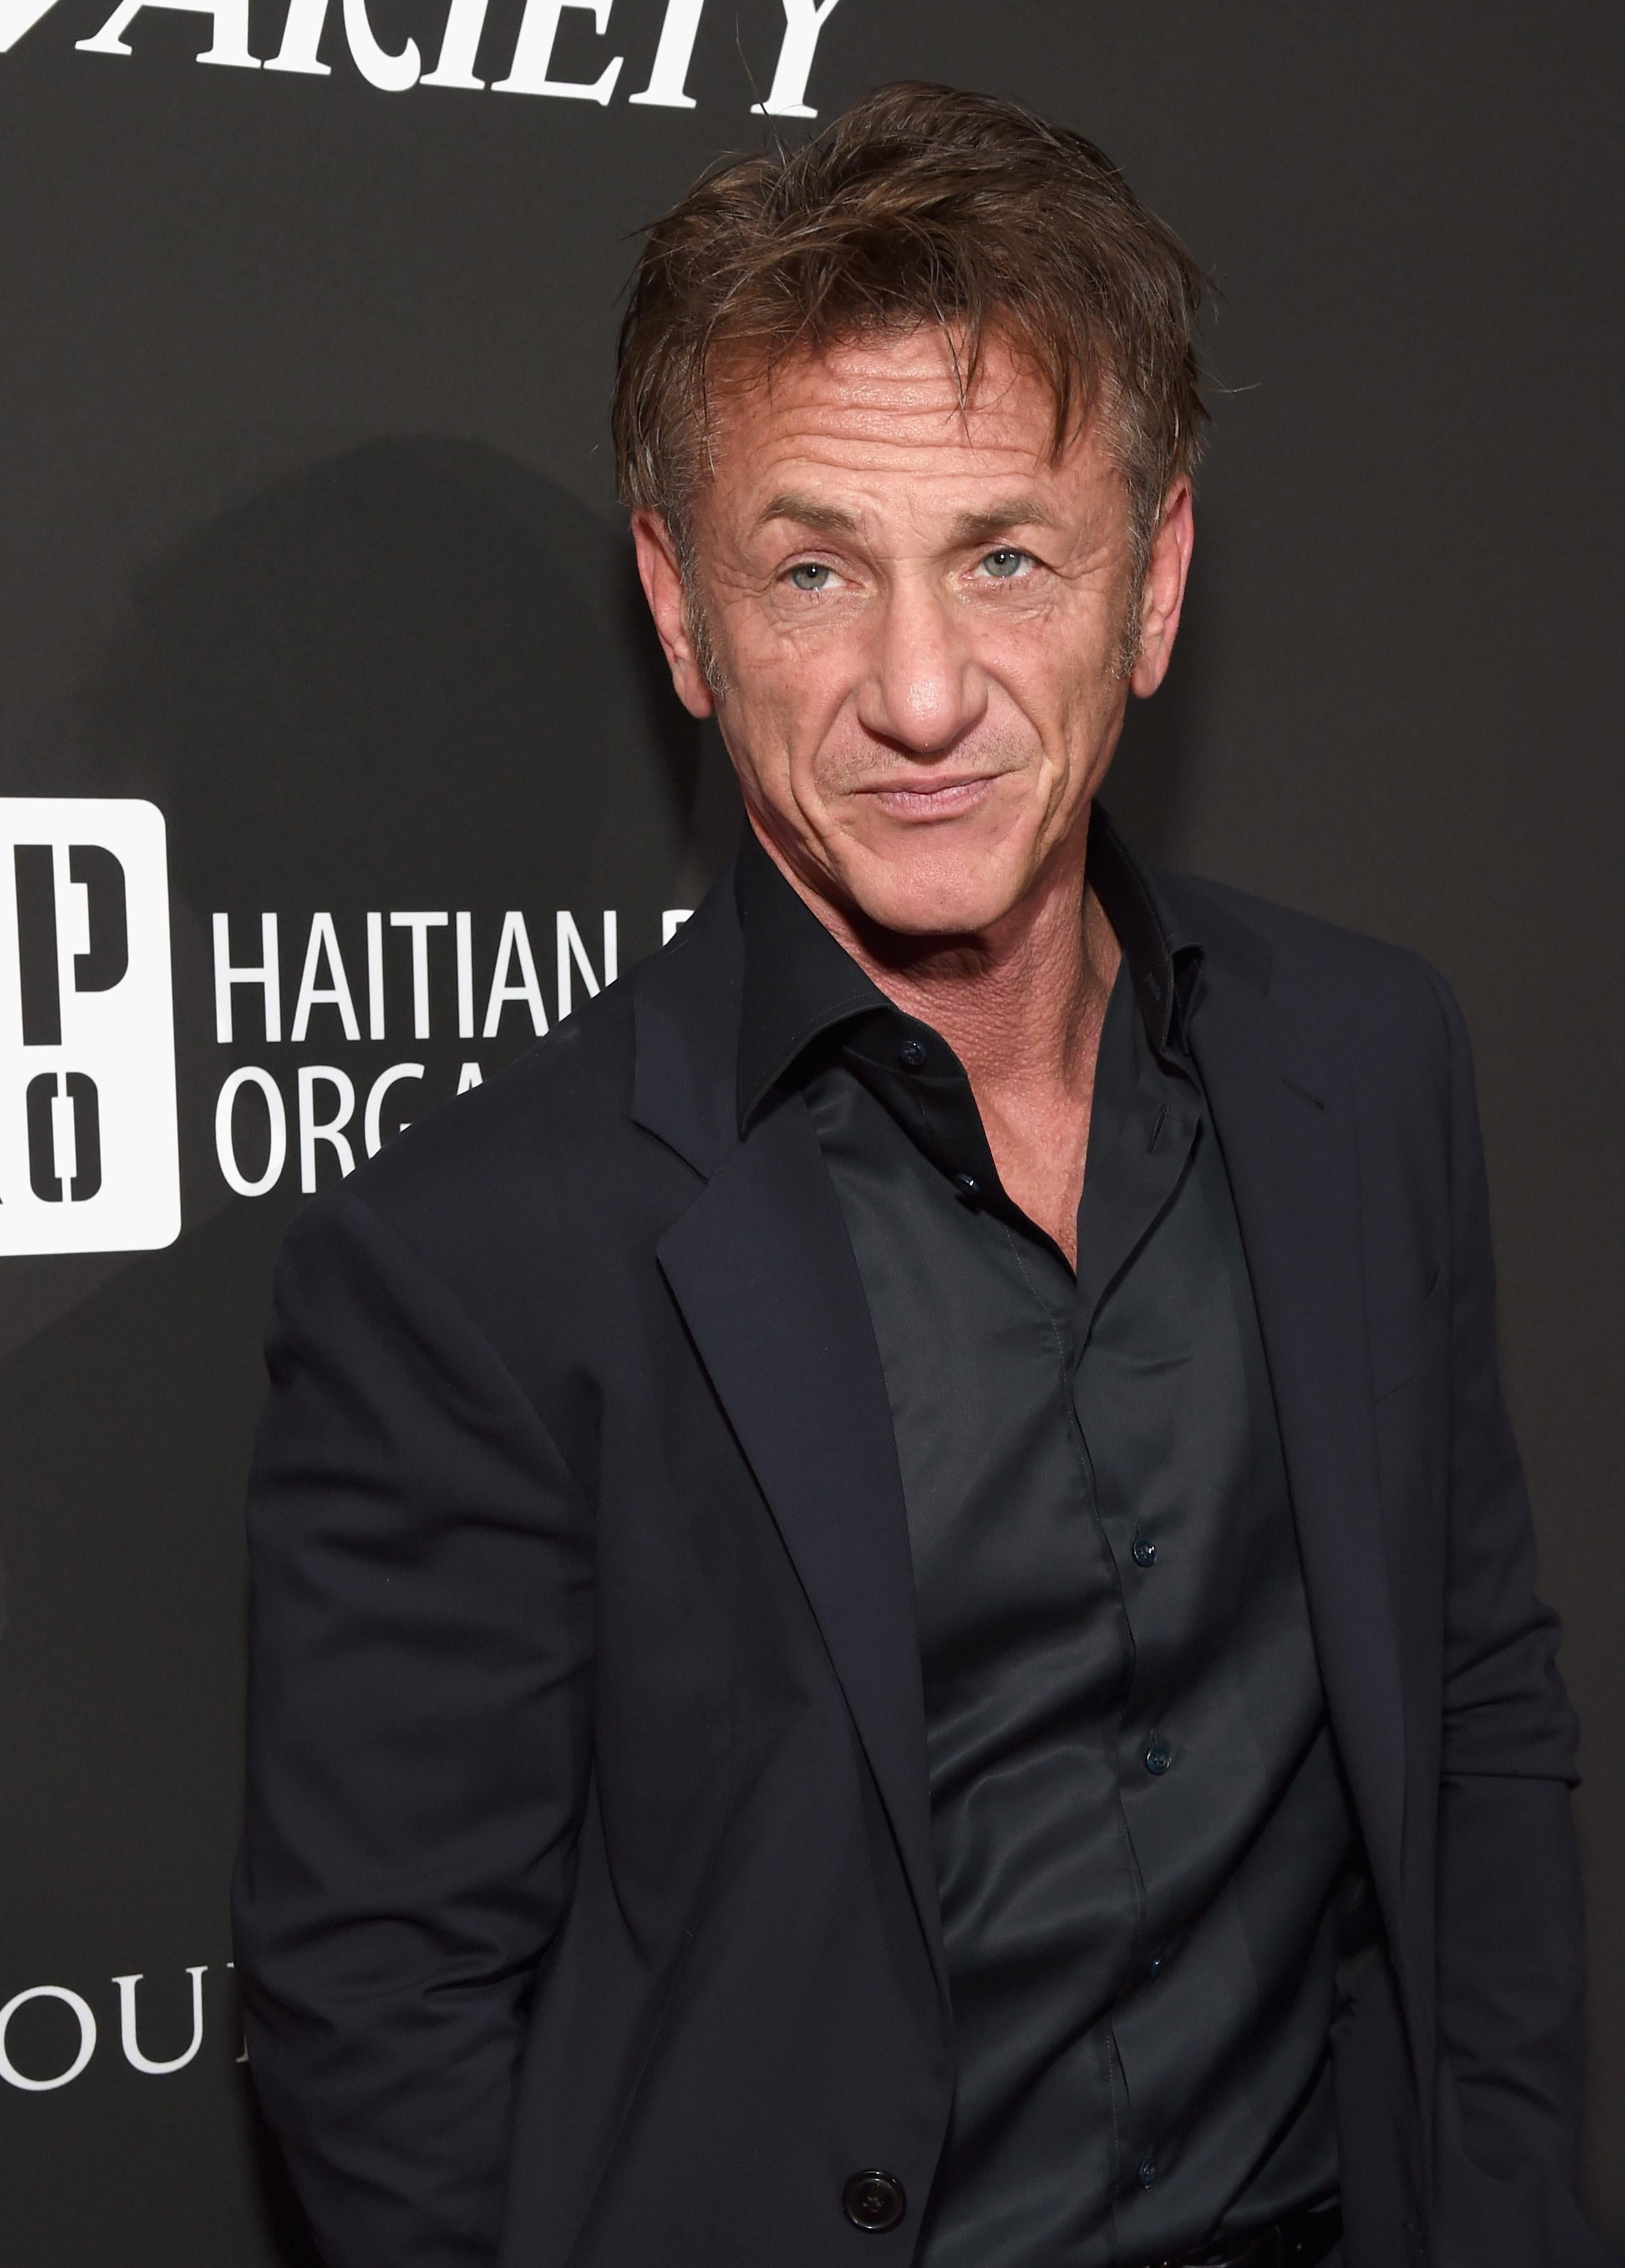 Sean Penn stands in front a black wall, wearing a black suit.